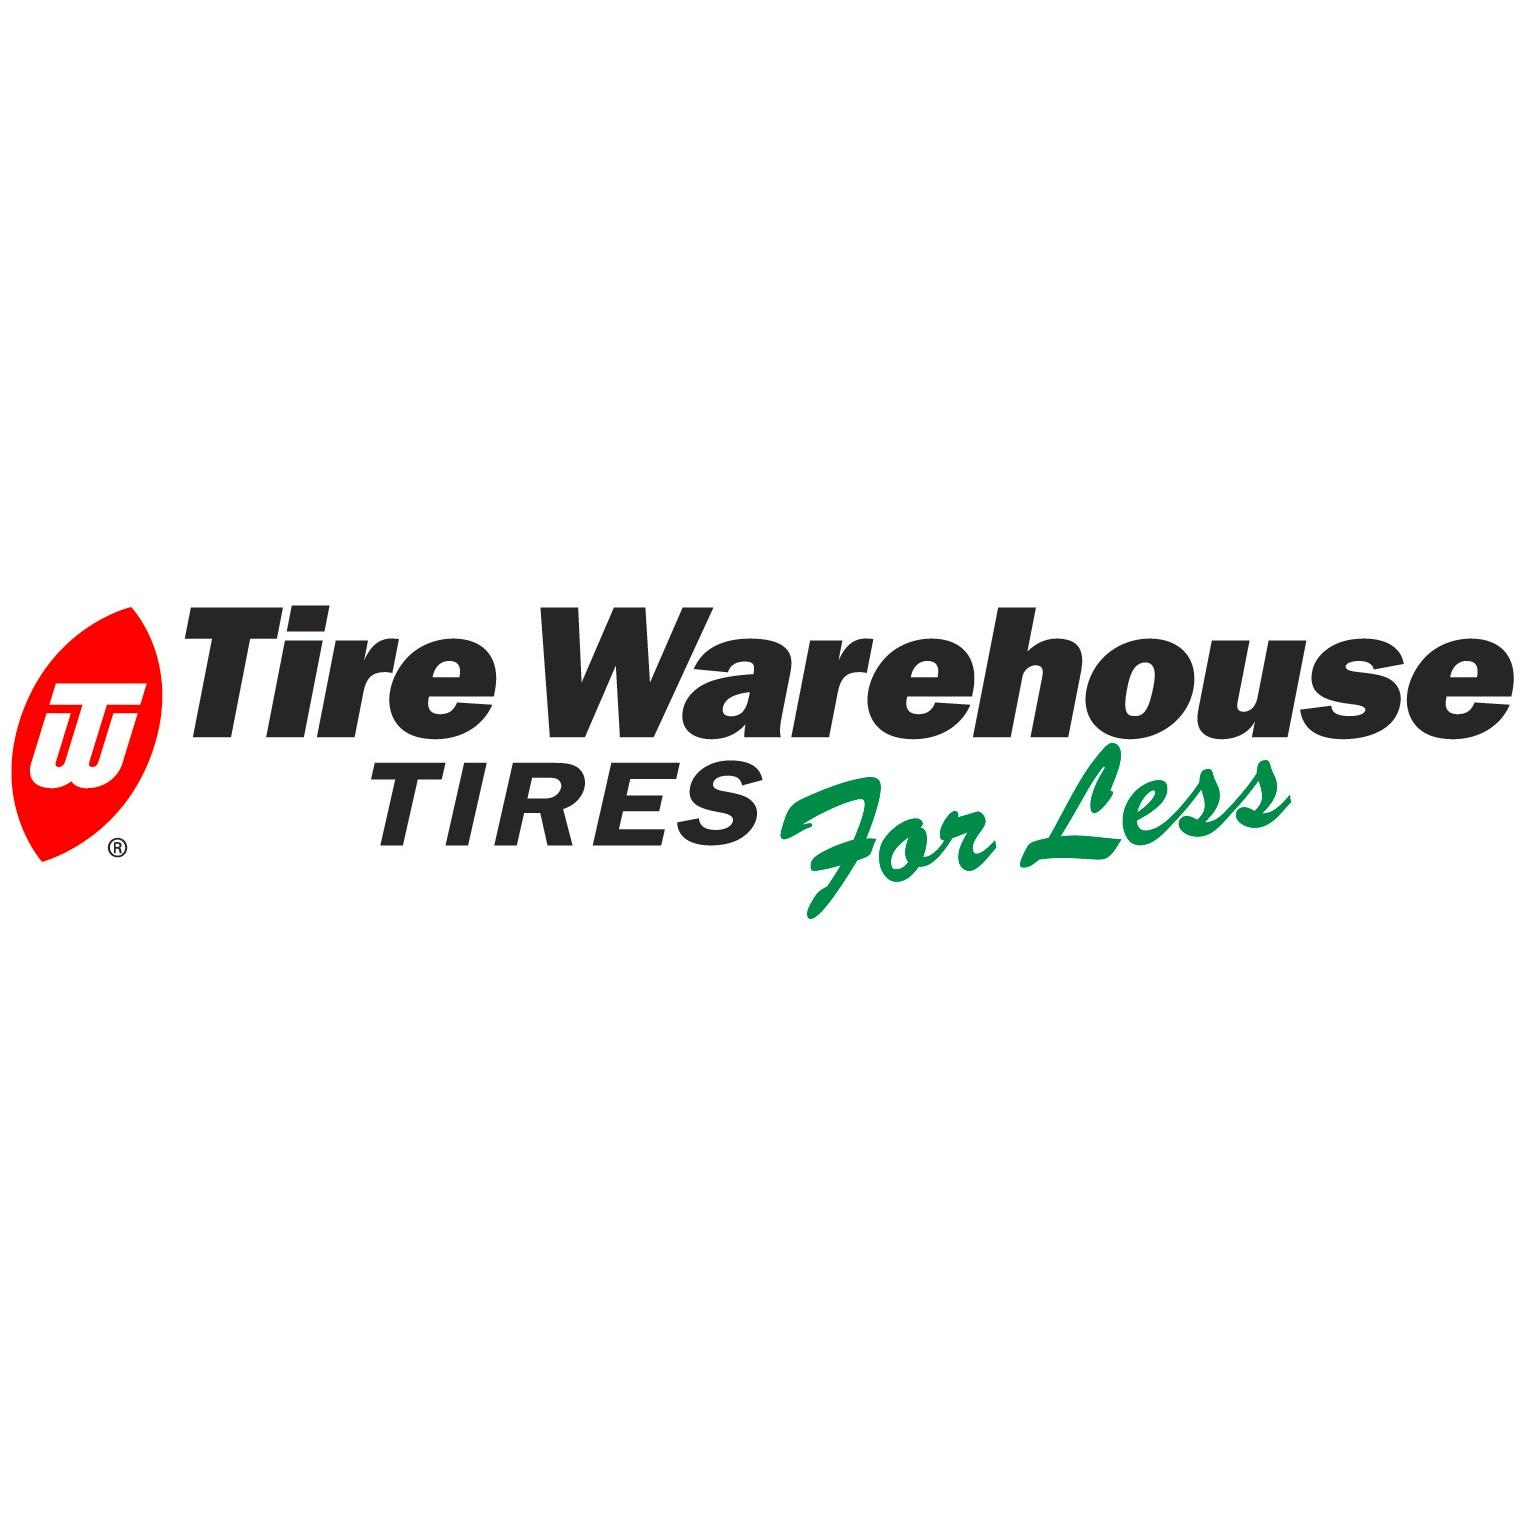 Tire Warehouse image 2